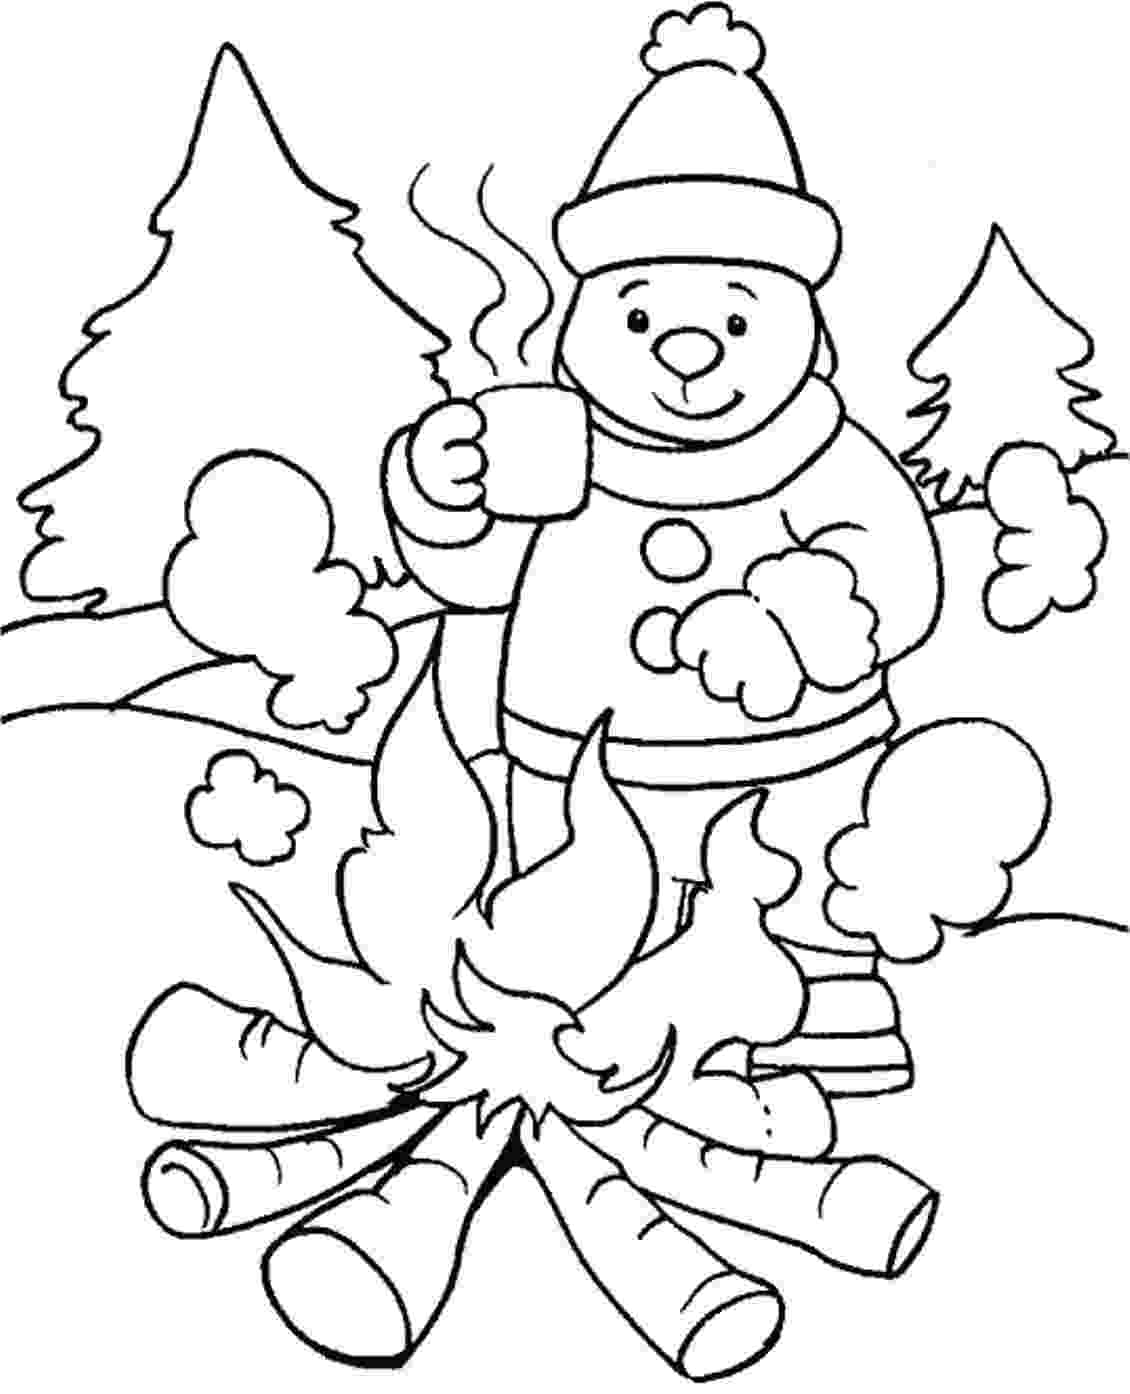 colouring sheets winter winter season coloring pages crafts and worksheets for sheets colouring winter